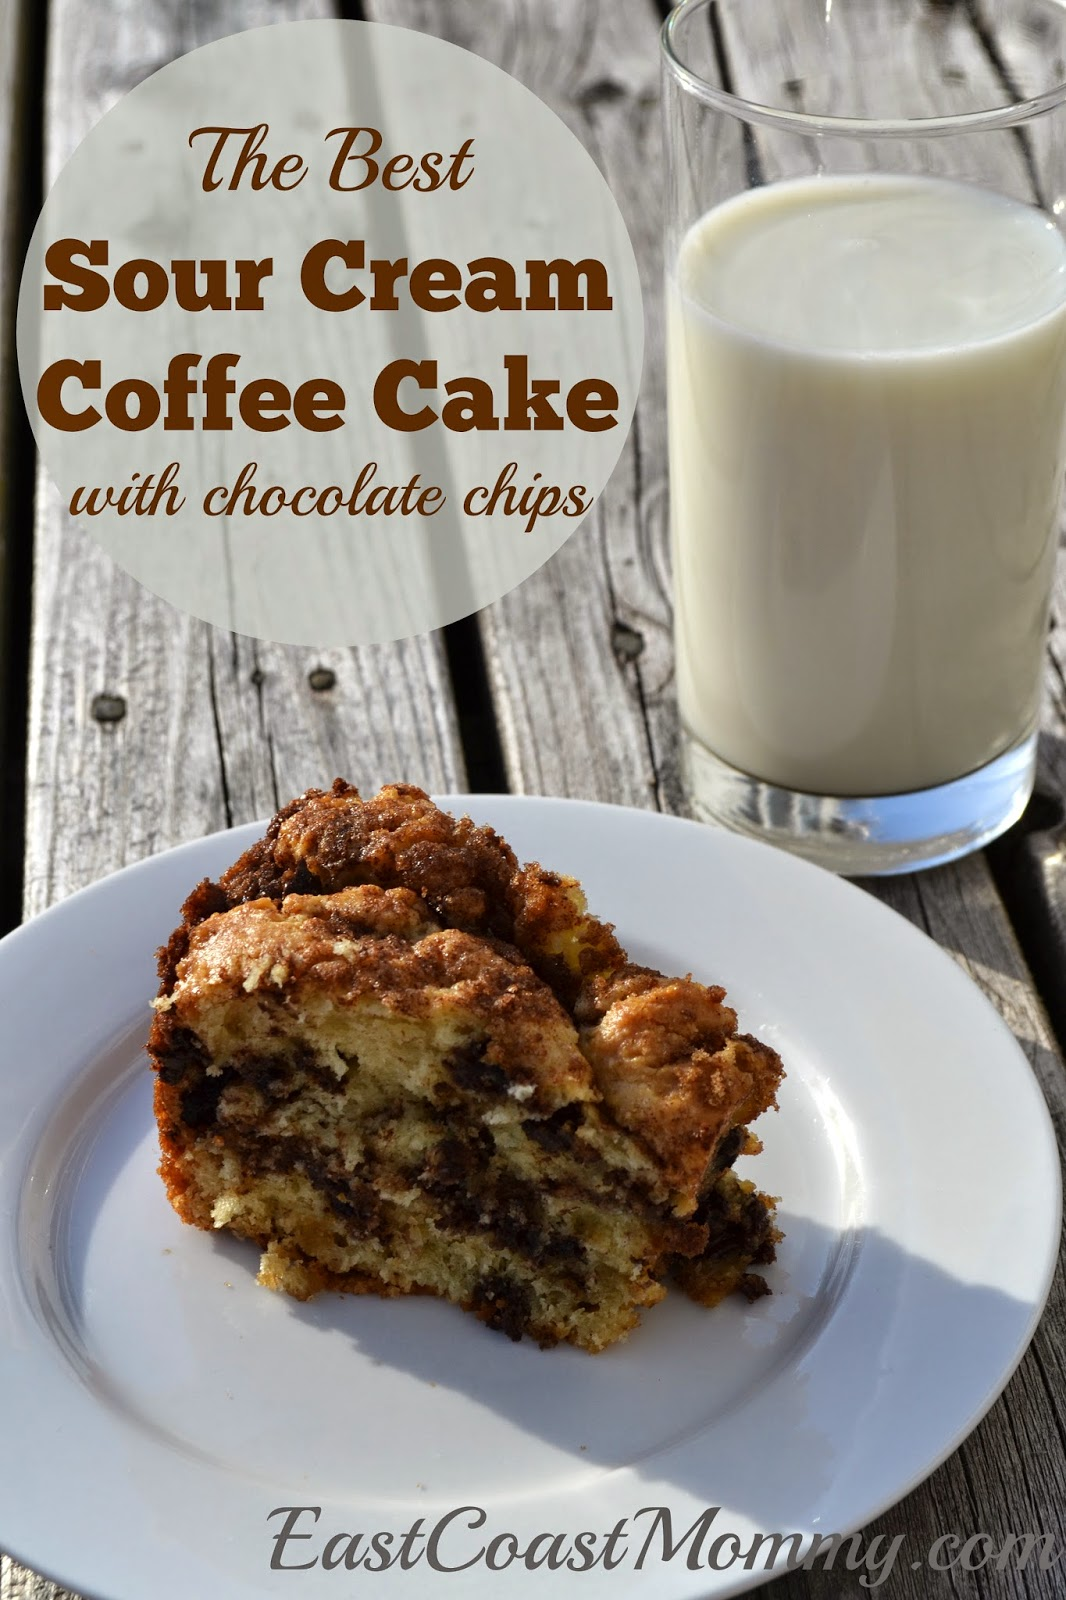 East Coast Mommy: The Best Sour Cream Coffee Cake Recipe